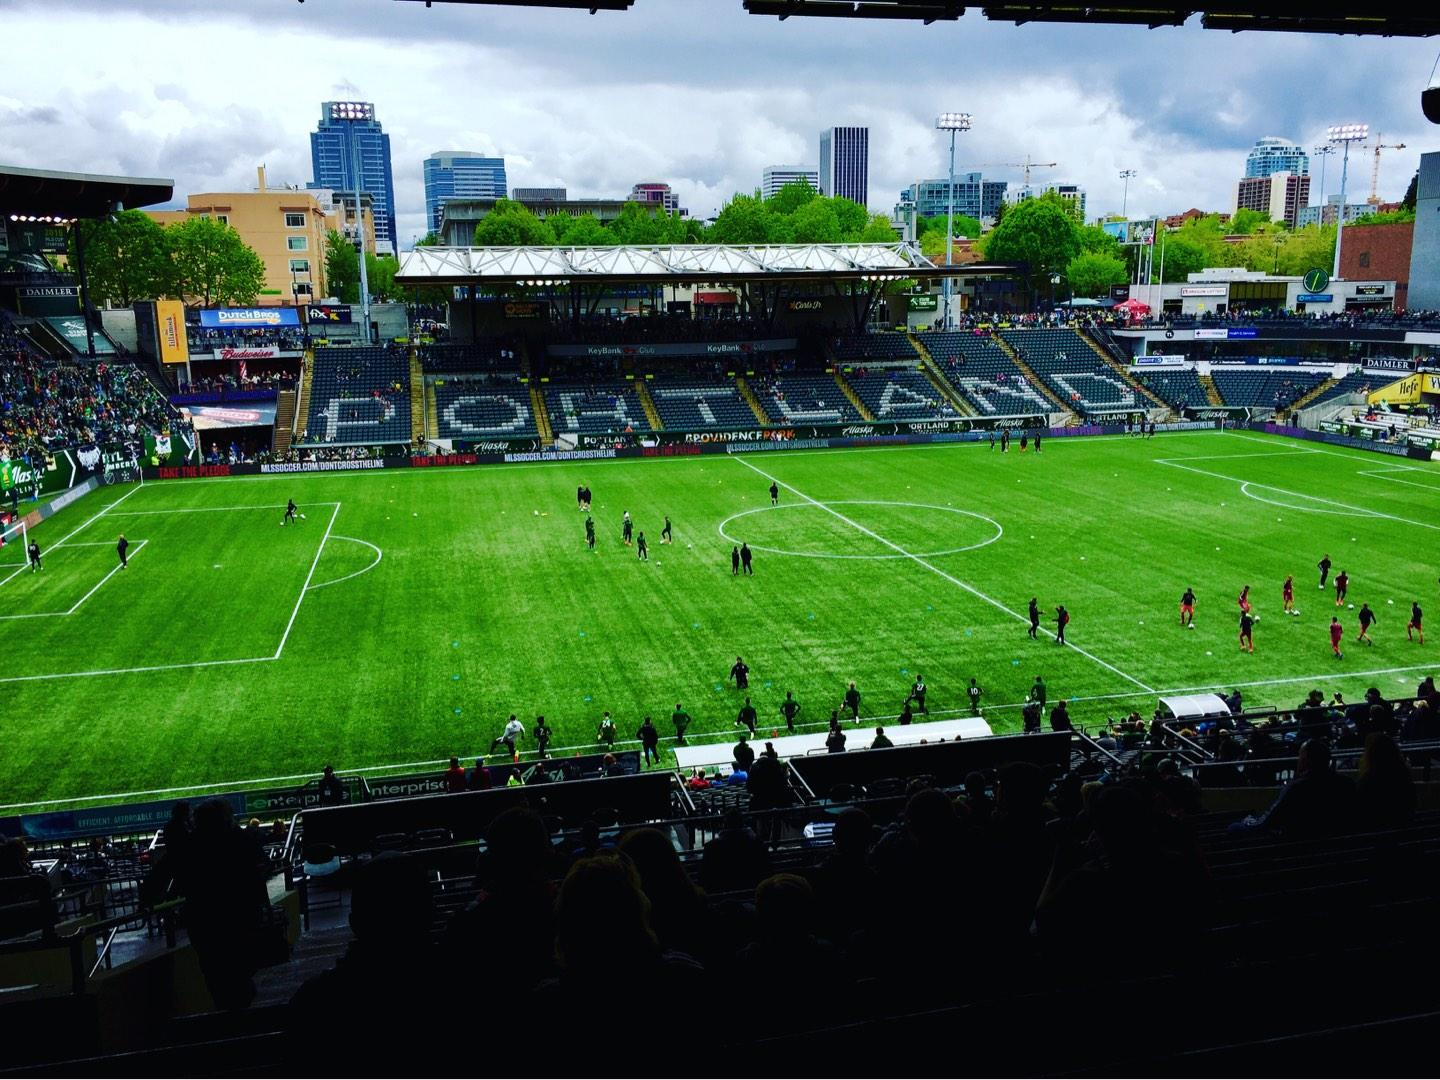 Providence Park Section 215 Row Q Seat 4,5